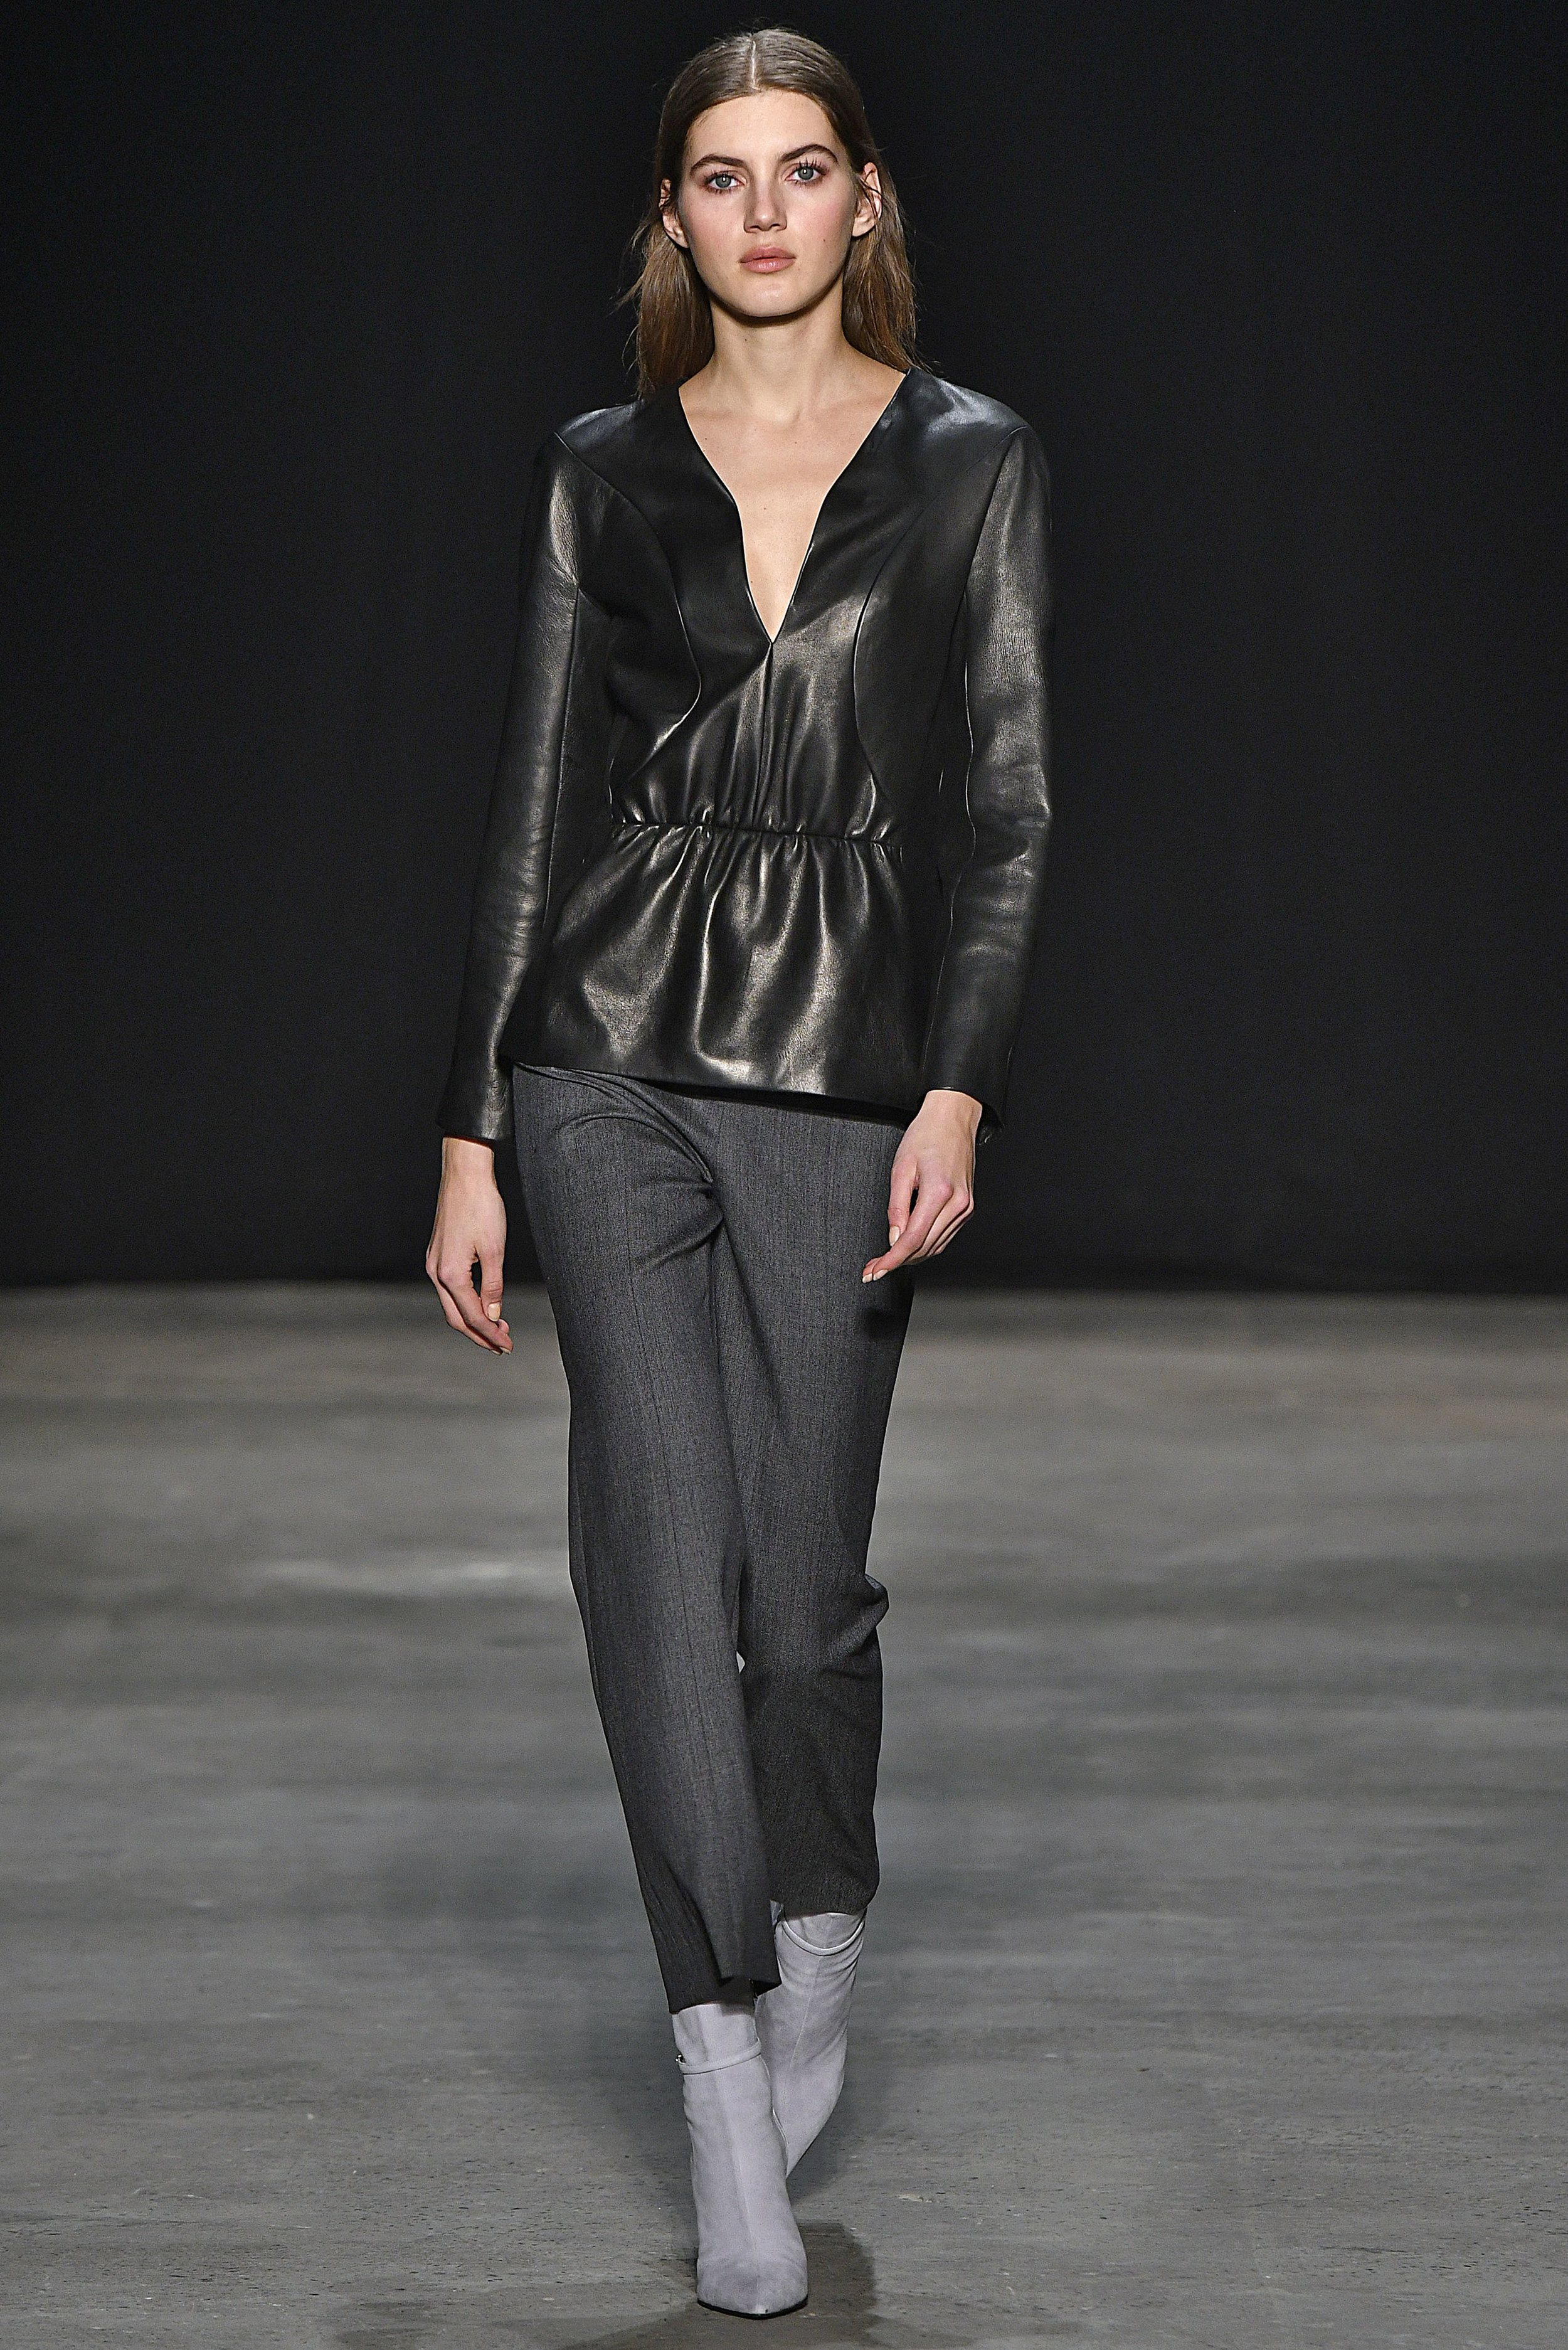 Narciso Rodriguez Fall 2017 collection. Black leather top with grey melange wool pant.